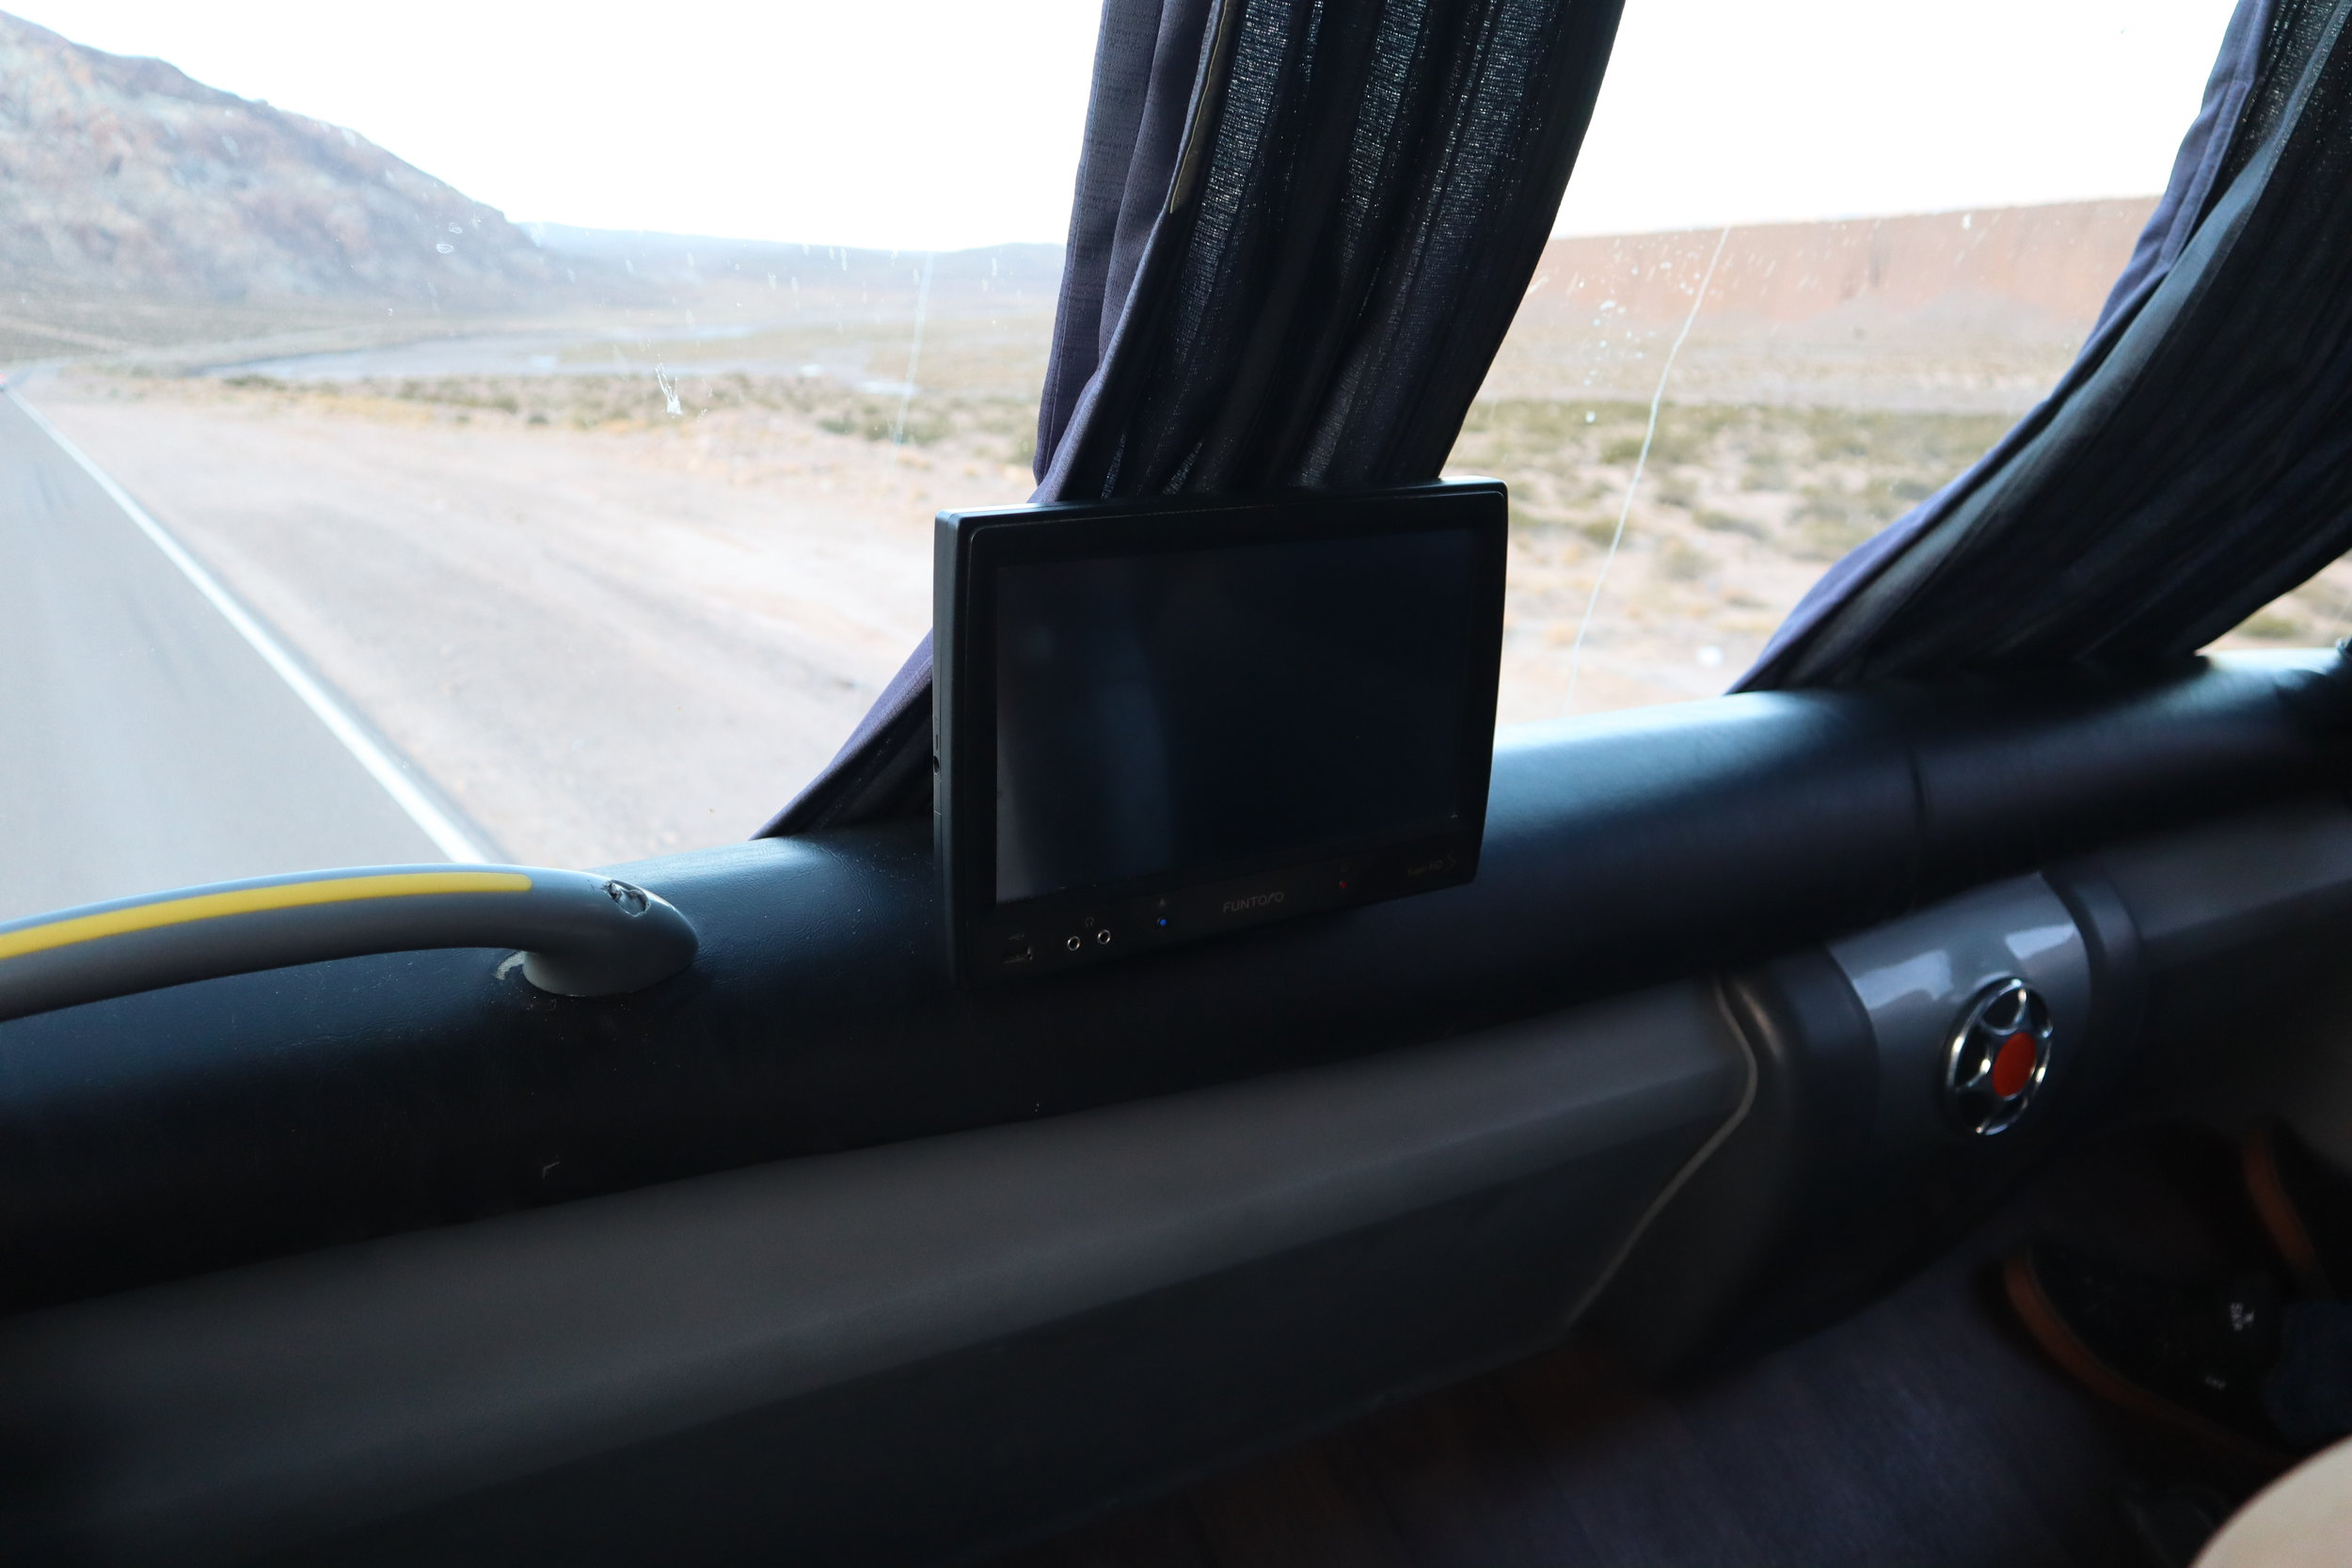 The view out of the front of the bus as well as a tv screen.